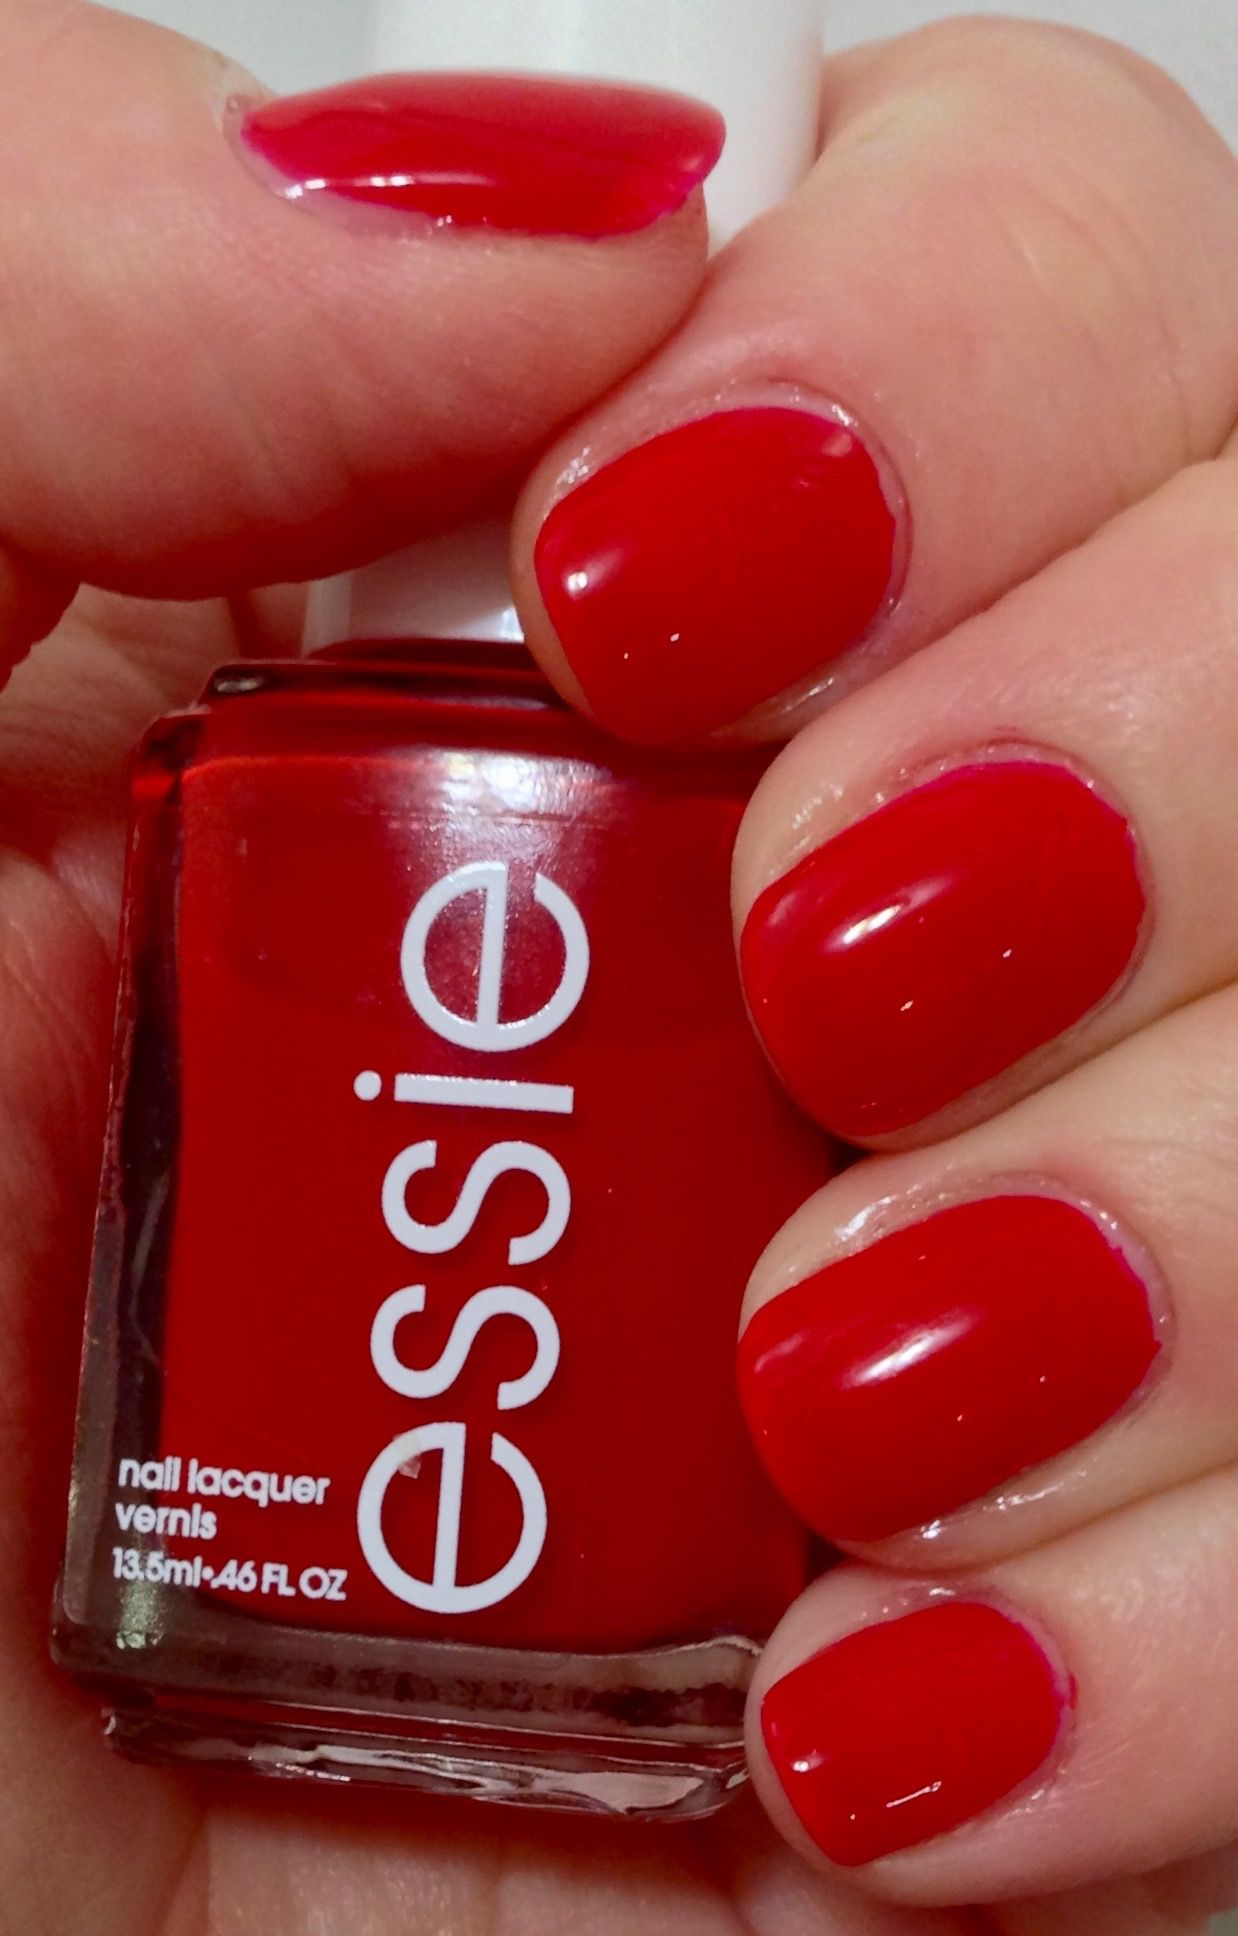 Russian Roulette by @essiepolish! The PERFECT red nail polish ...